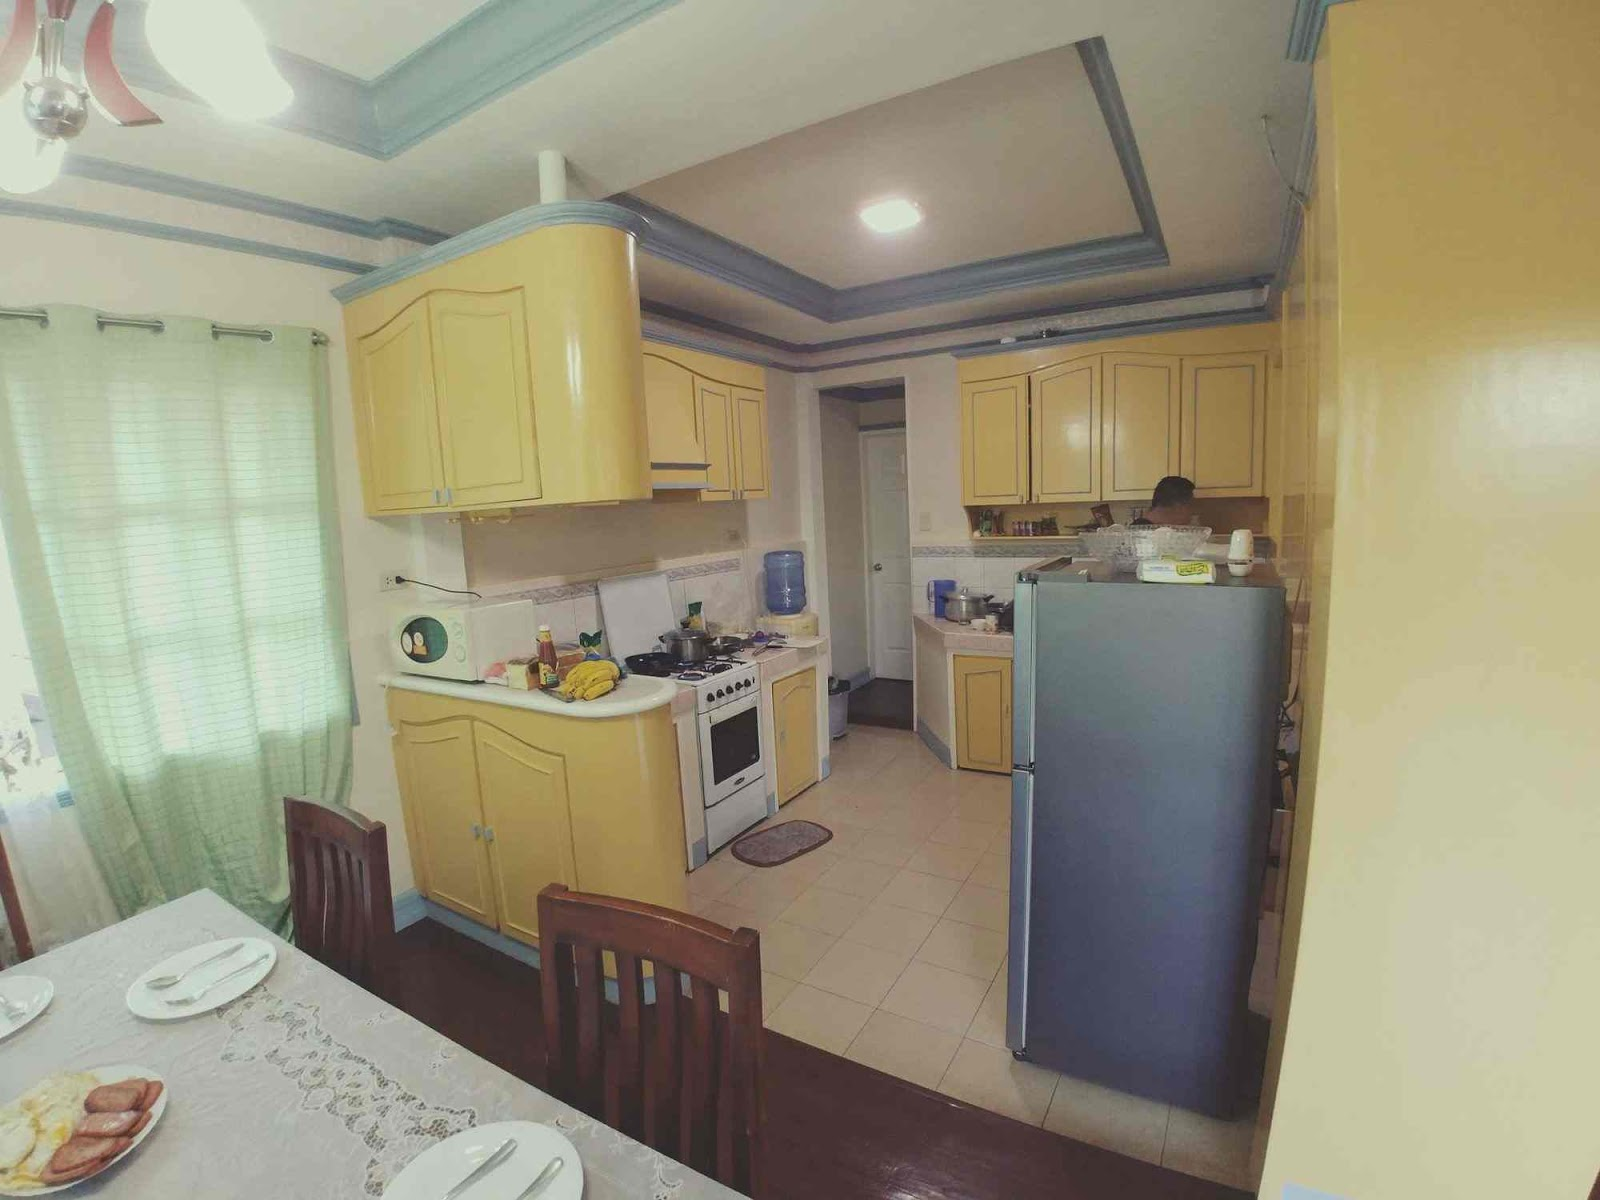 The kitchen of the house in Bohol